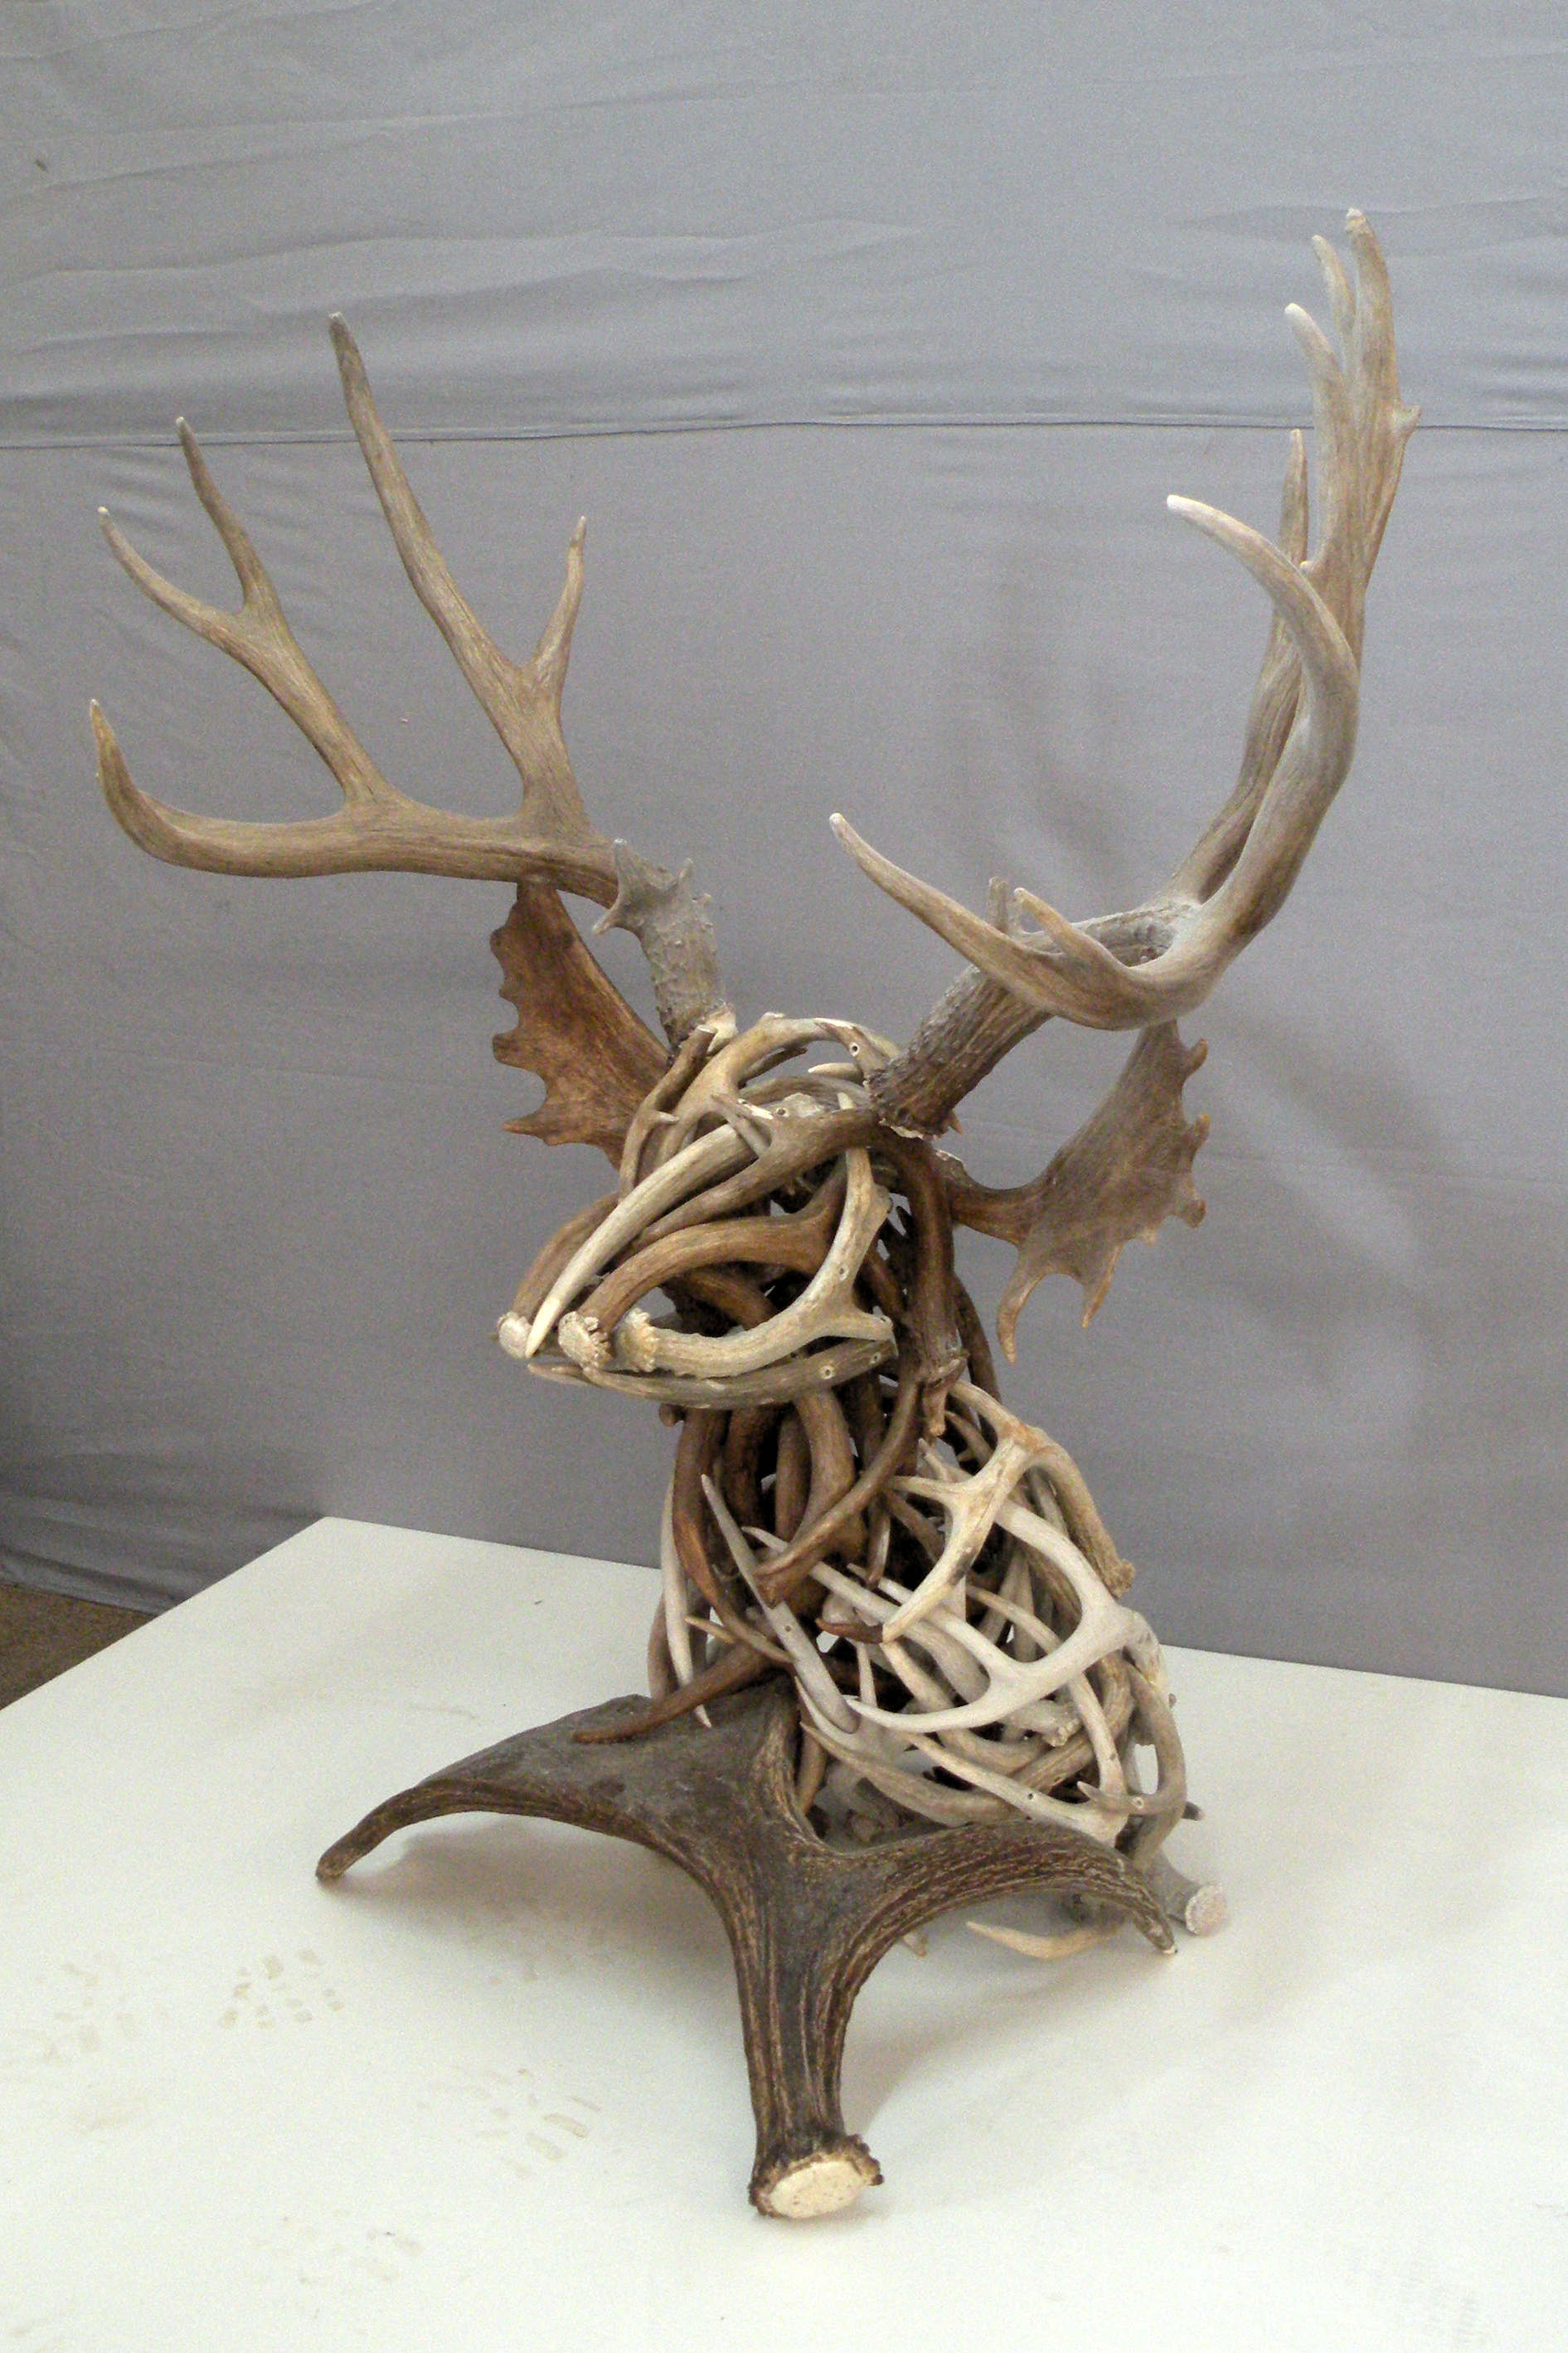 Head Turning Antlers